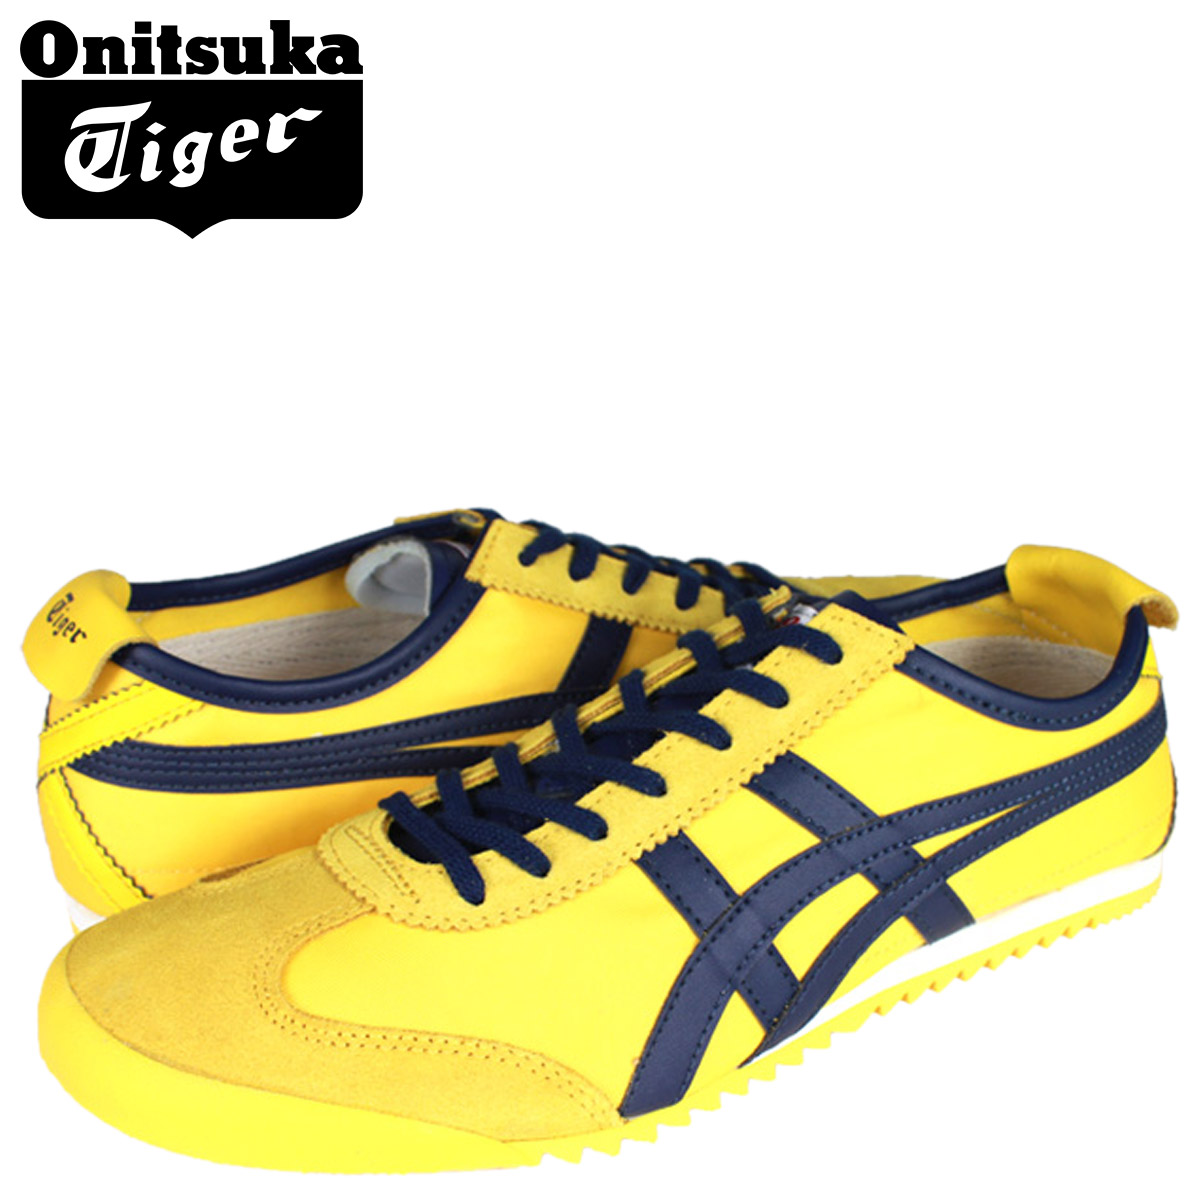 premium selection 25fb6 f48e1 [SOLD OUT] ONITSUKA Tiger ASICs Onitsuka Tiger asics sneakers yellow blue D  013N-0442 MEXIC 66 DX men's